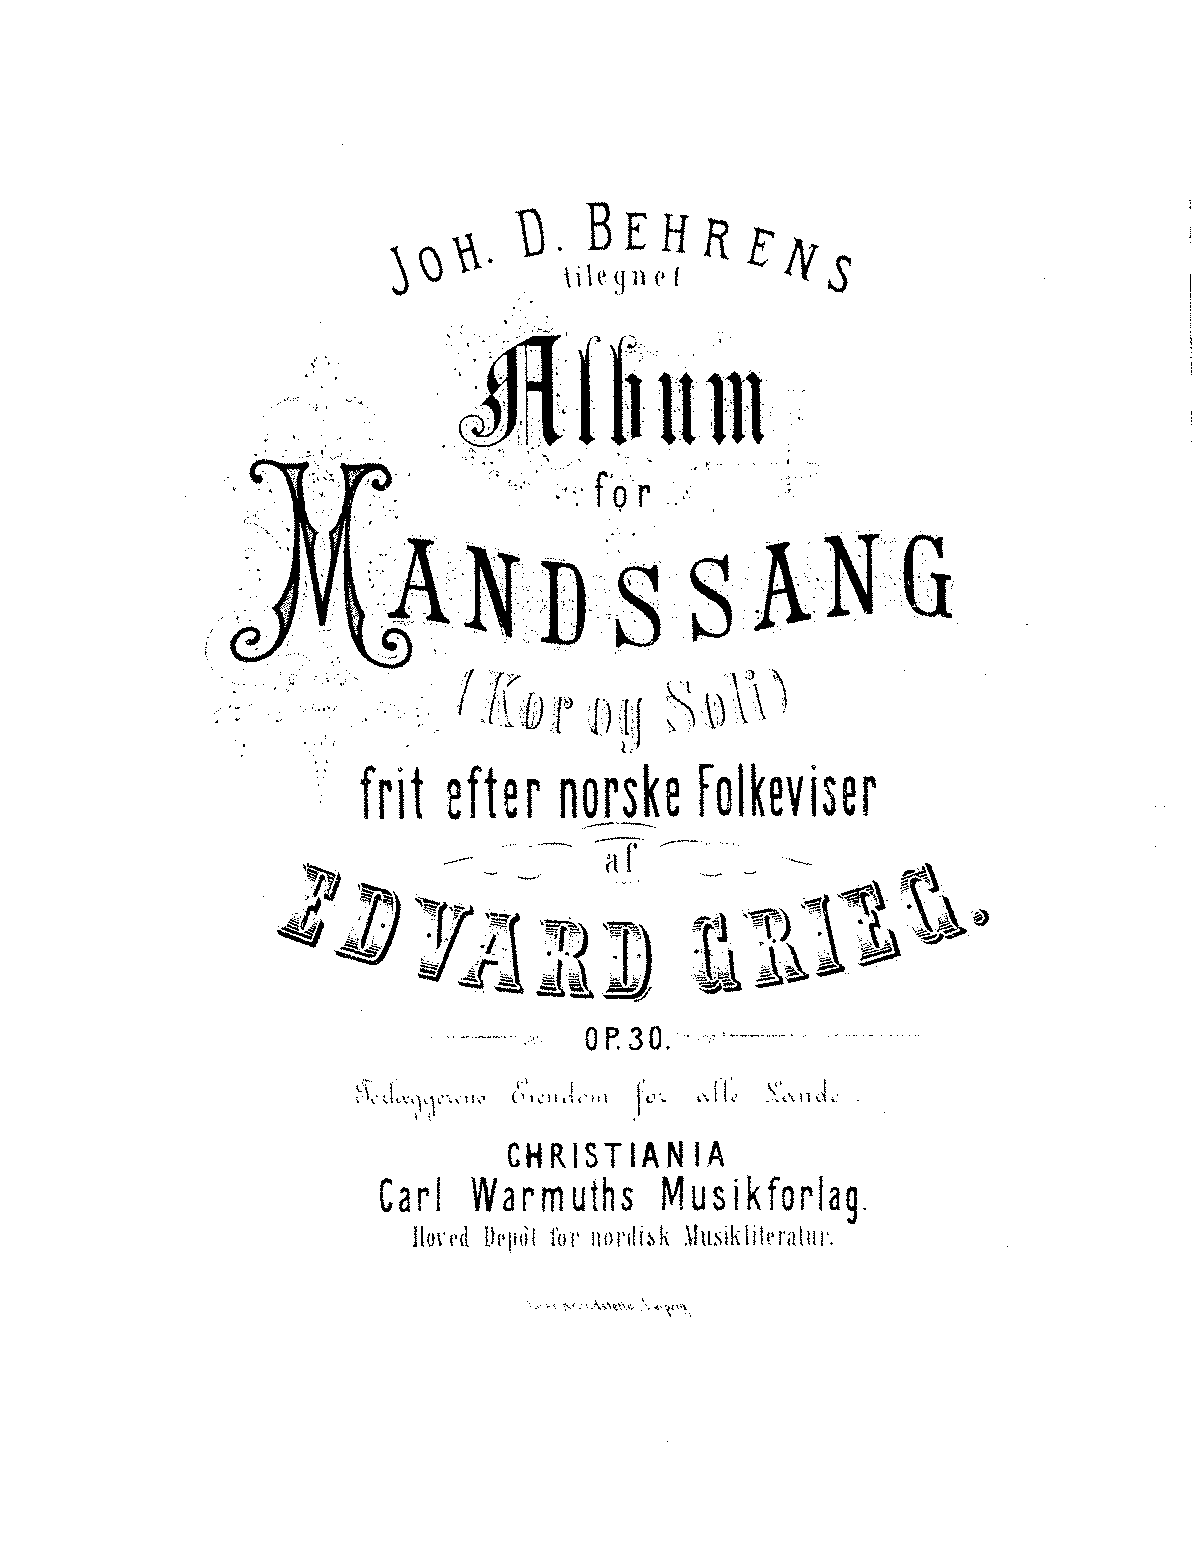 PMLP62452-Grieg Album for mandssang Op.30.pdf